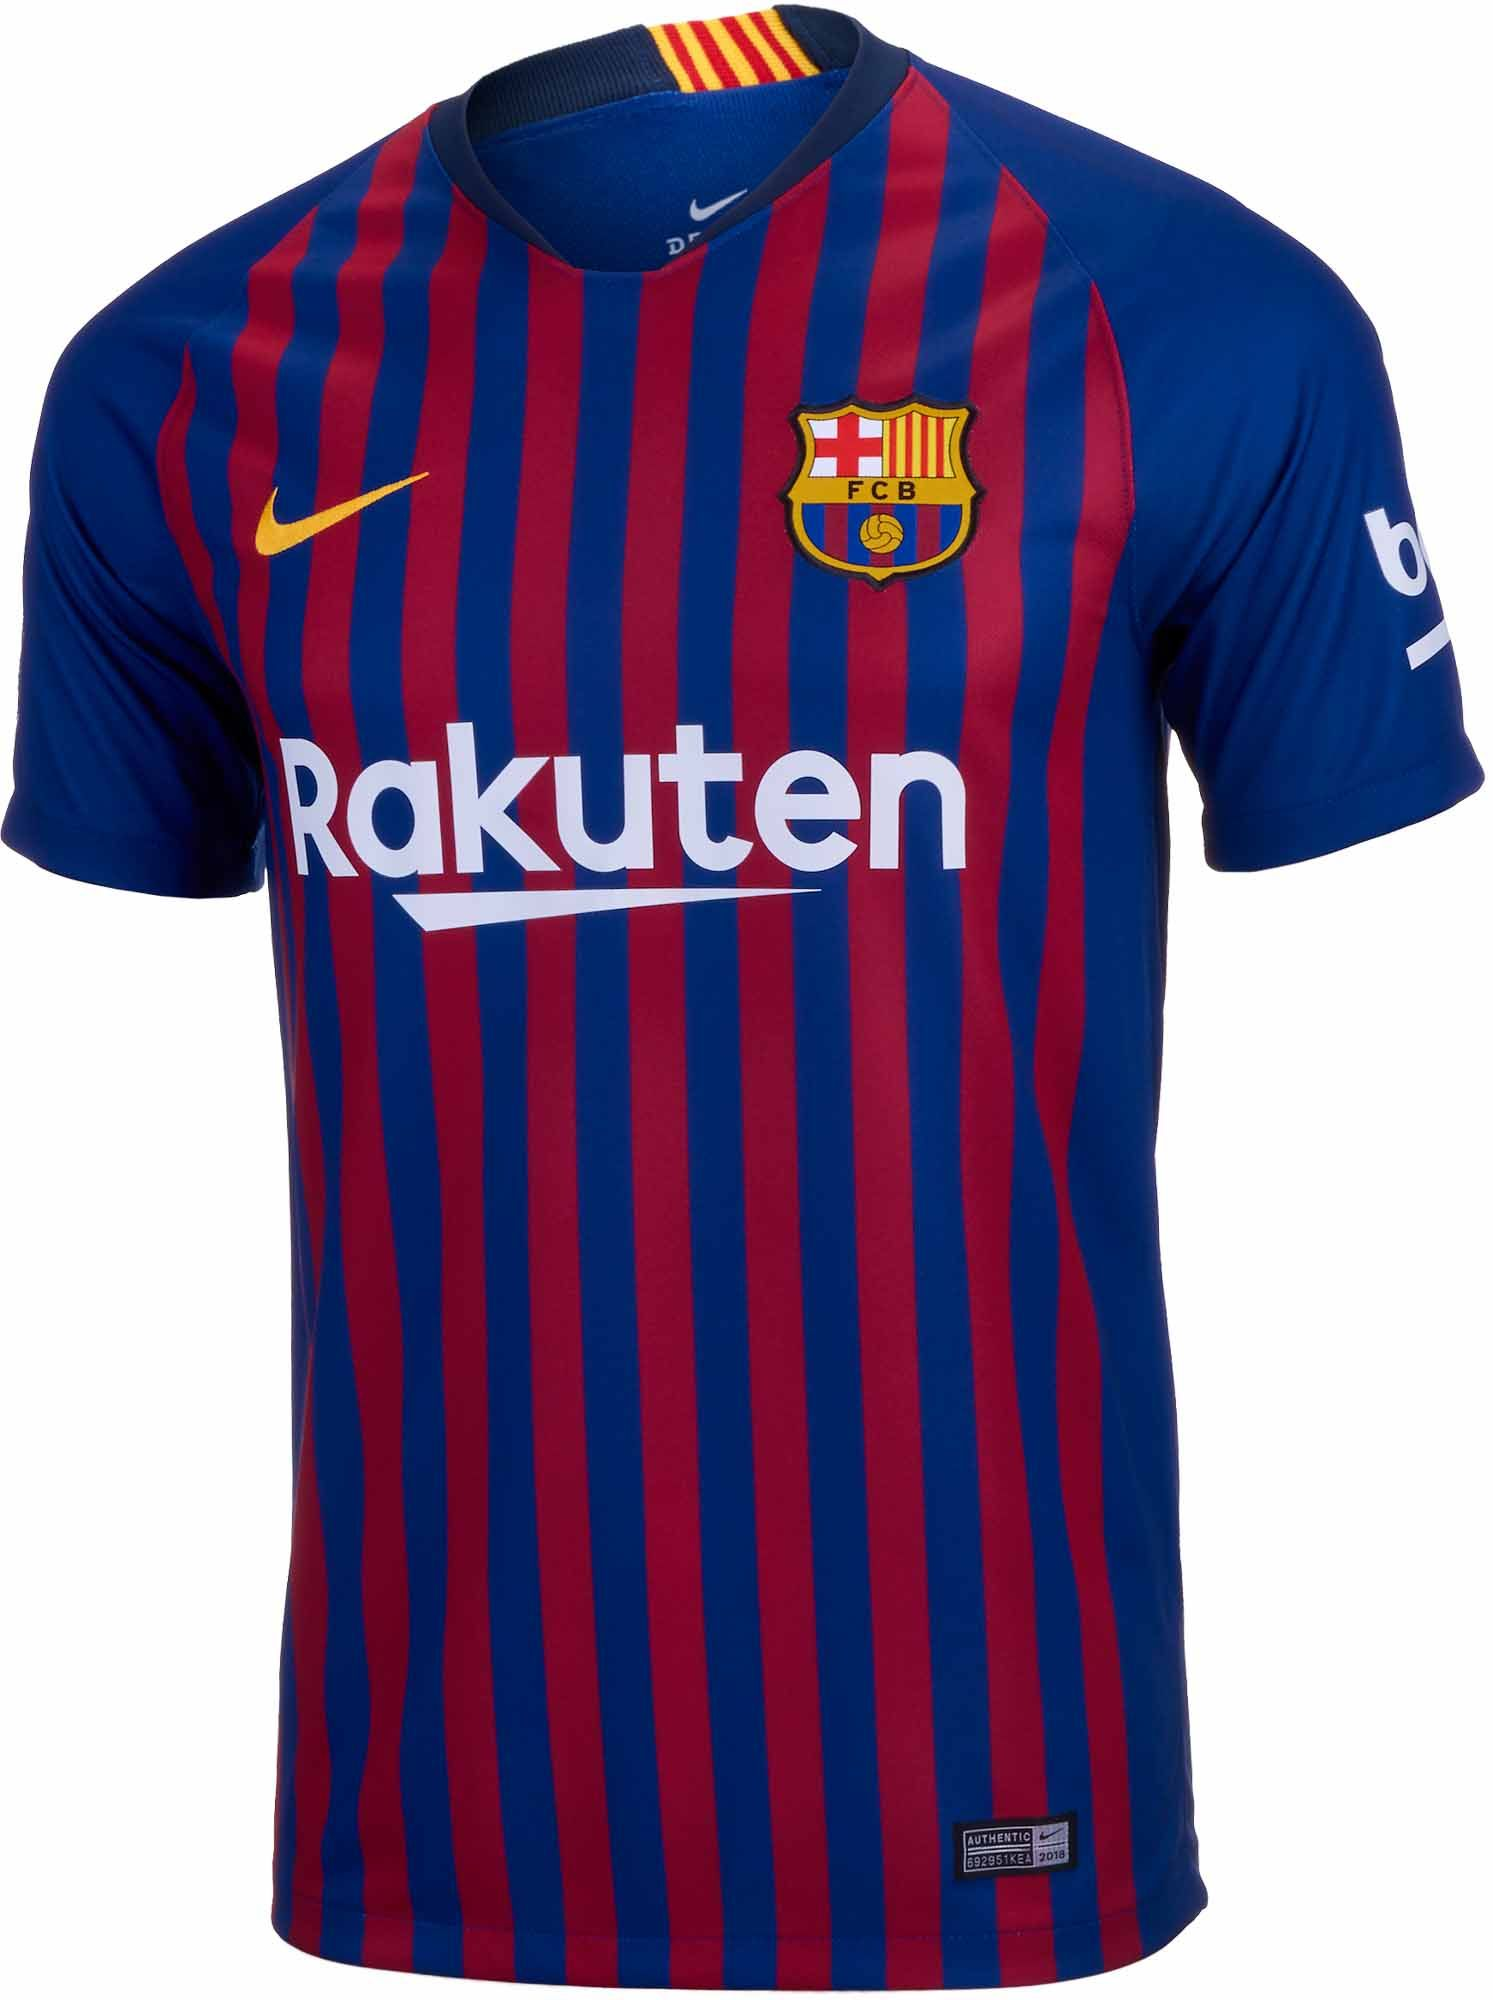 Buy this 2018 19 Kids FC Barcelona Home Jersey from www.soccerpro.com a0a2bfbcf